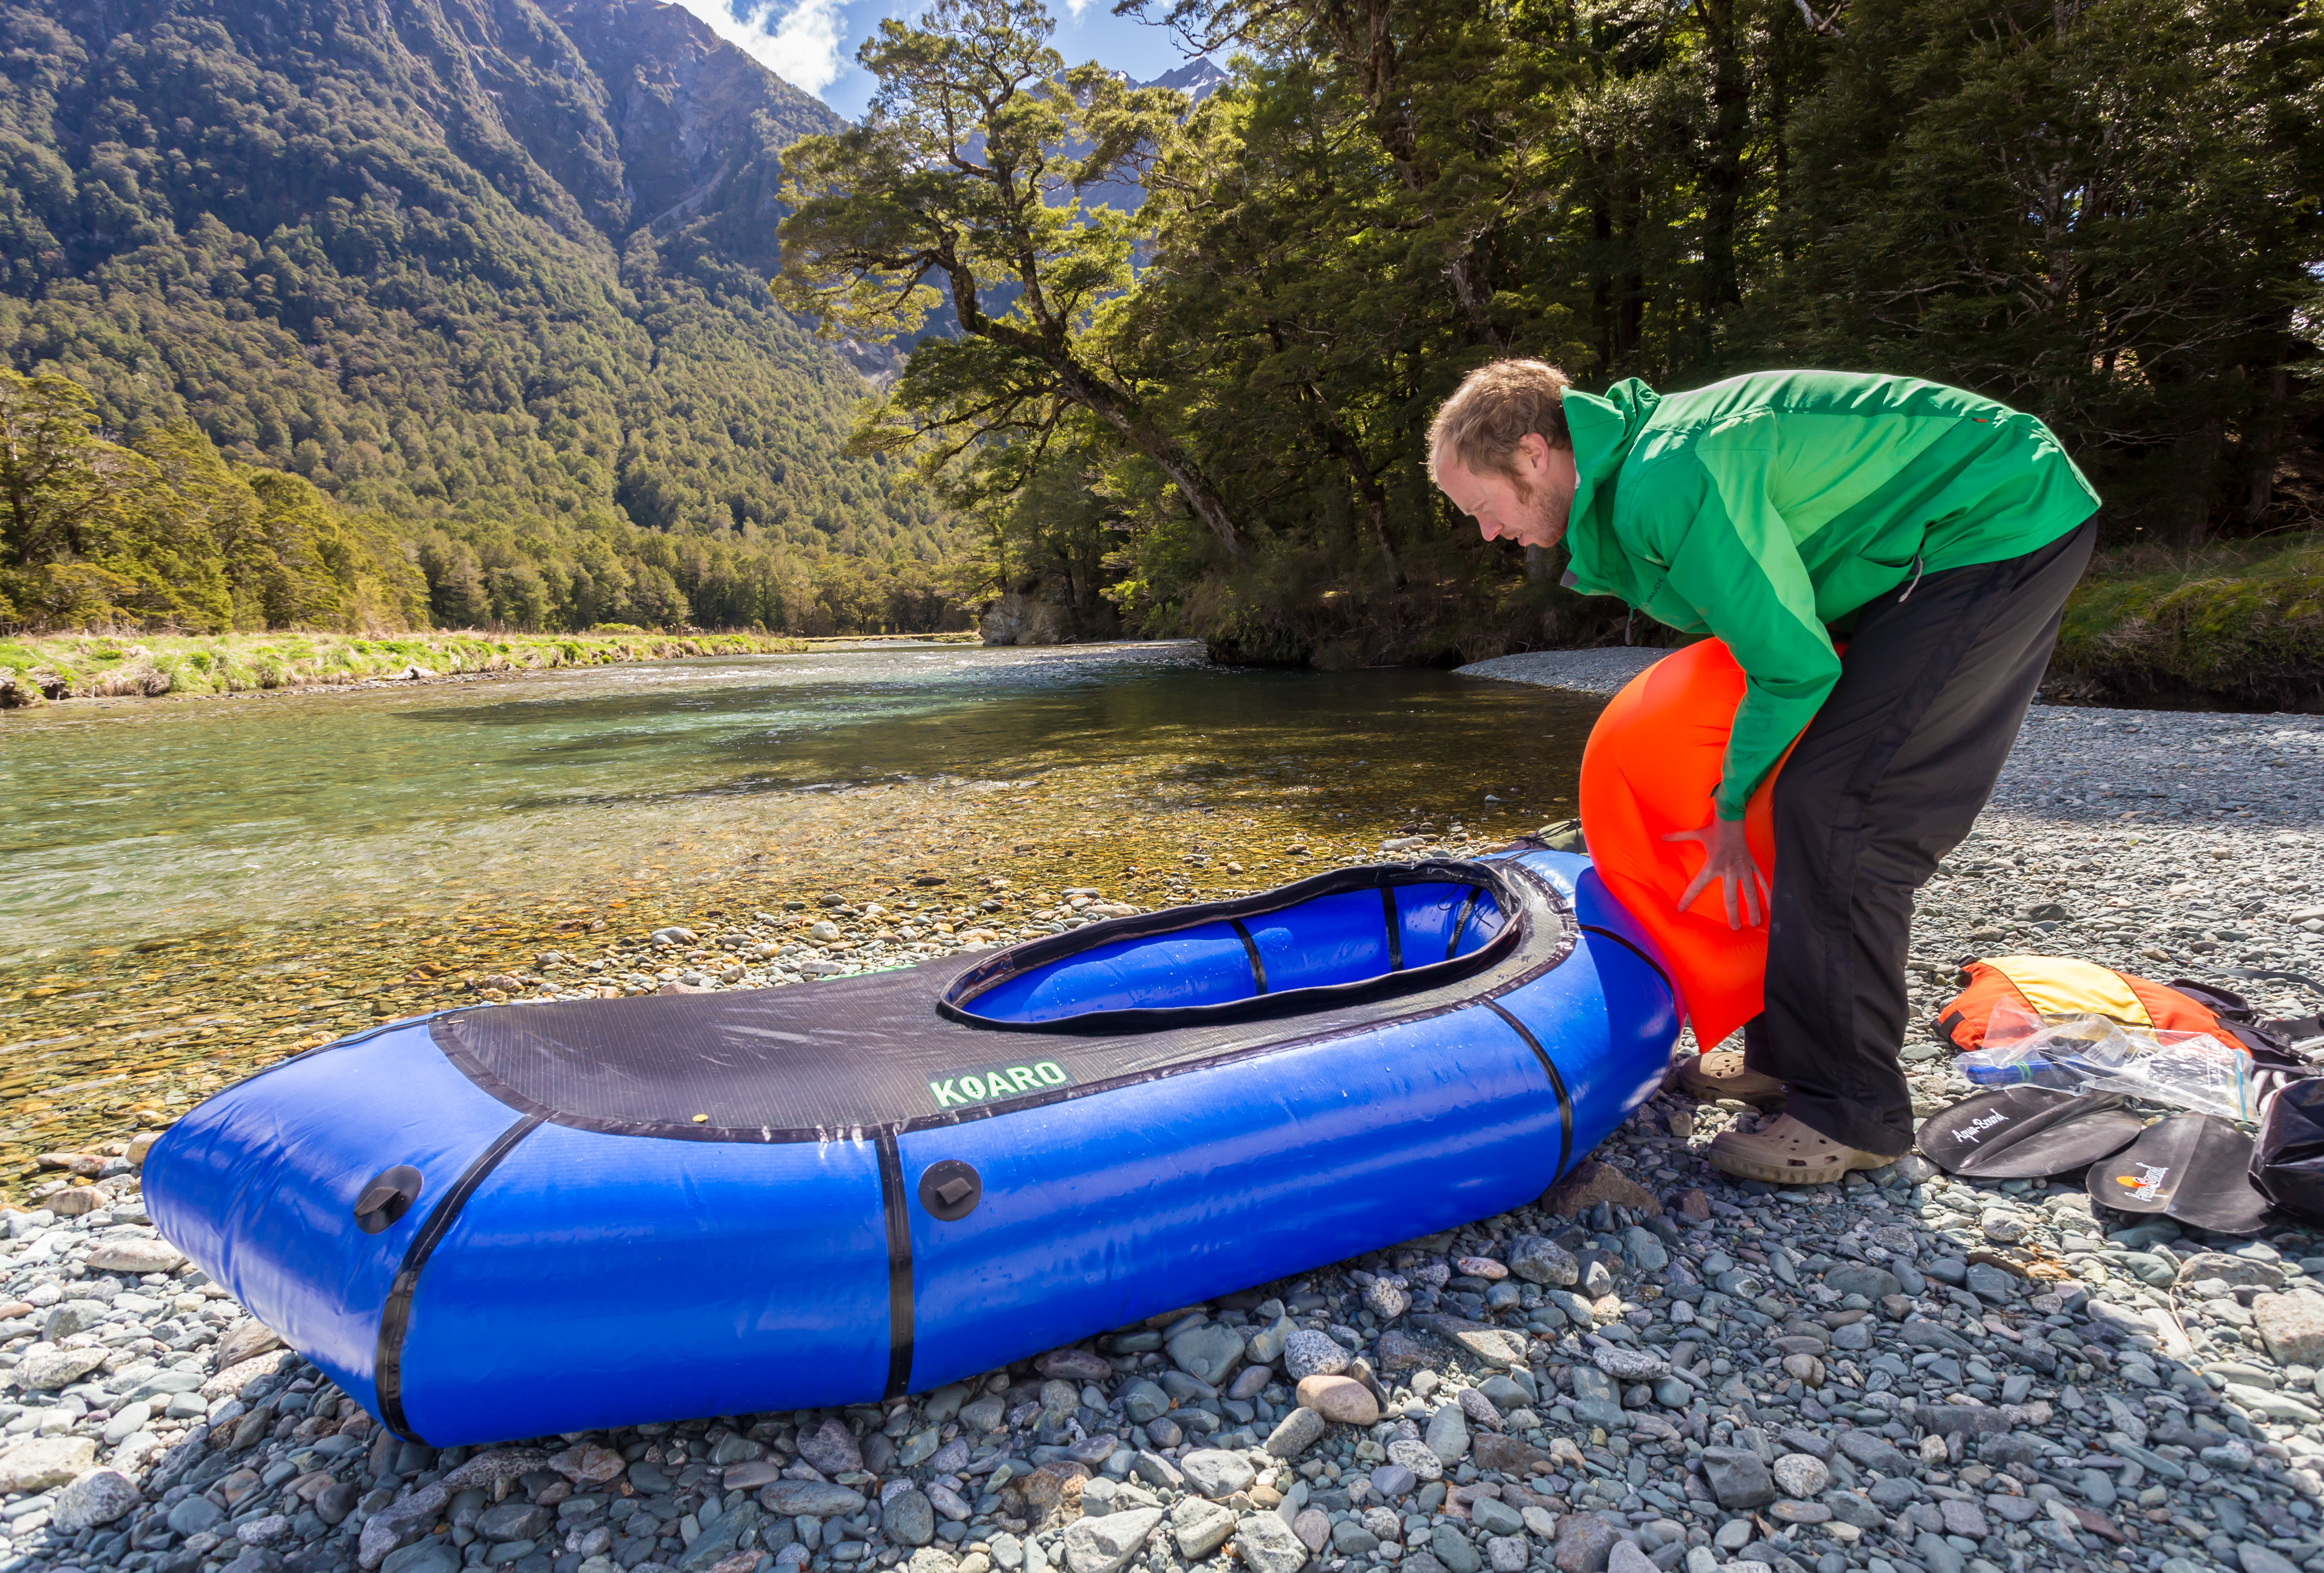 Squeeze the air into the raft.